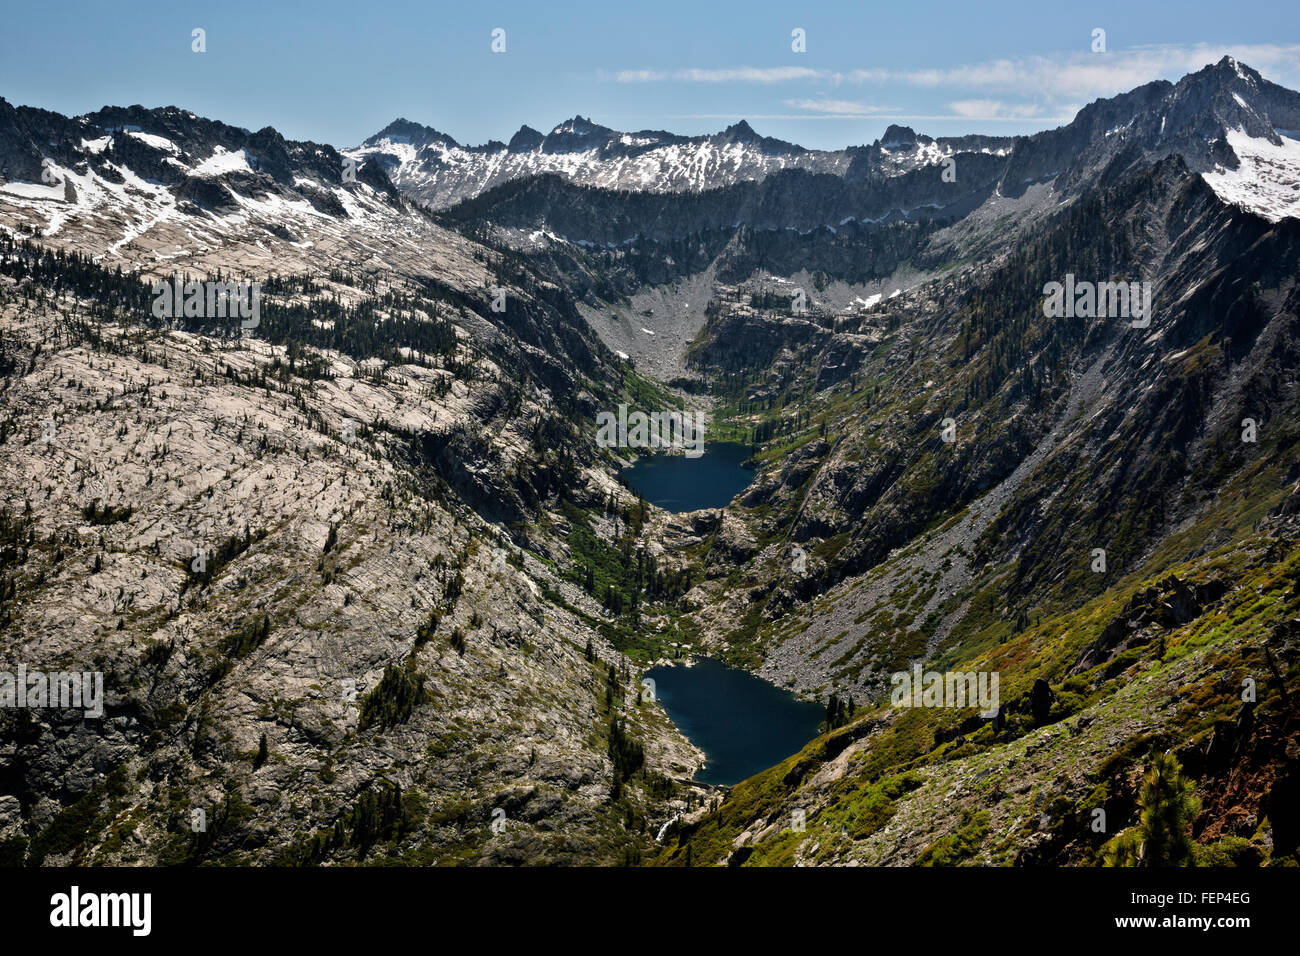 CALIFORNIA - Emerald and Sapphire Lakes in the Stuart Fork Creek Valley from the summit of the Caribou Scramble Stock Photo